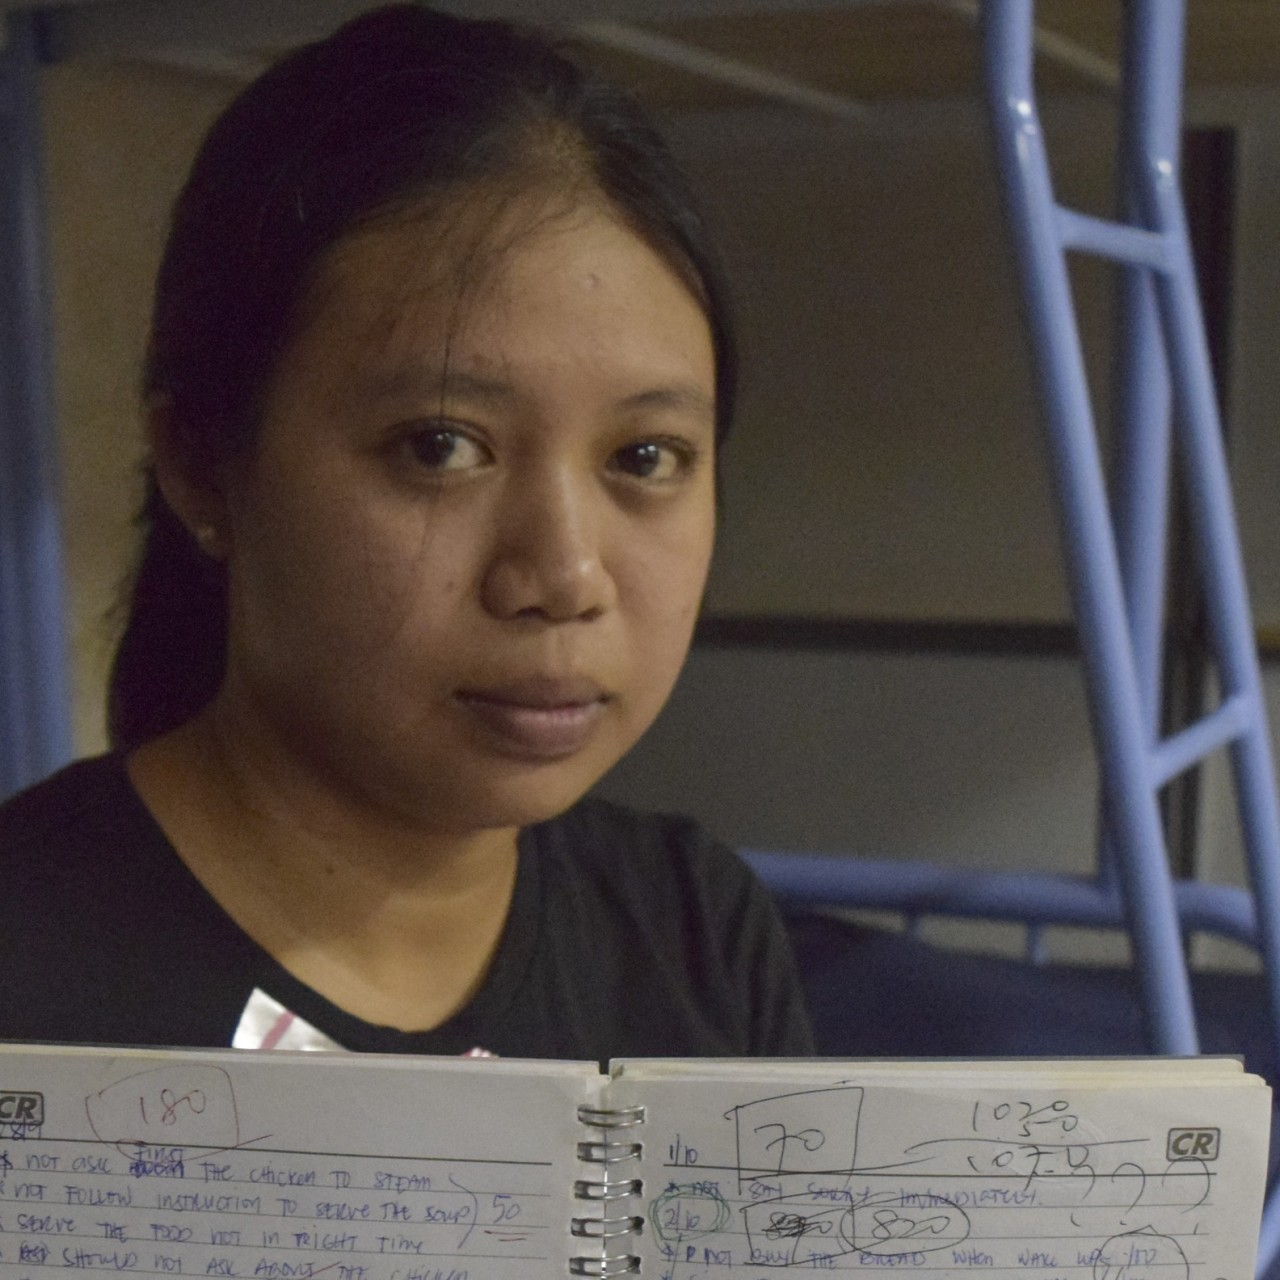 Domestic helper accuses former employer and convicted maid abuser of